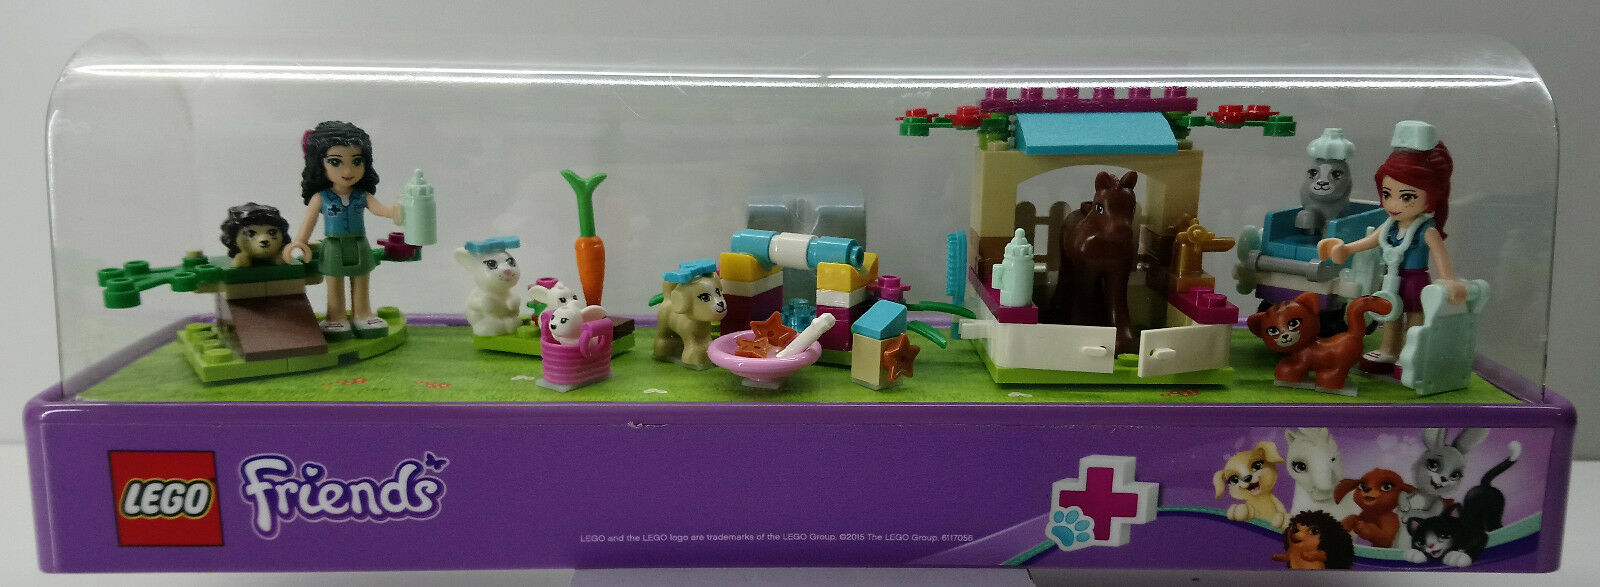 2015 OFFICIAL LEGO FRIENDS STORE DISPLAY DISPLAY DISPLAY COMPLETE IN GREAT CONDITION b73f35